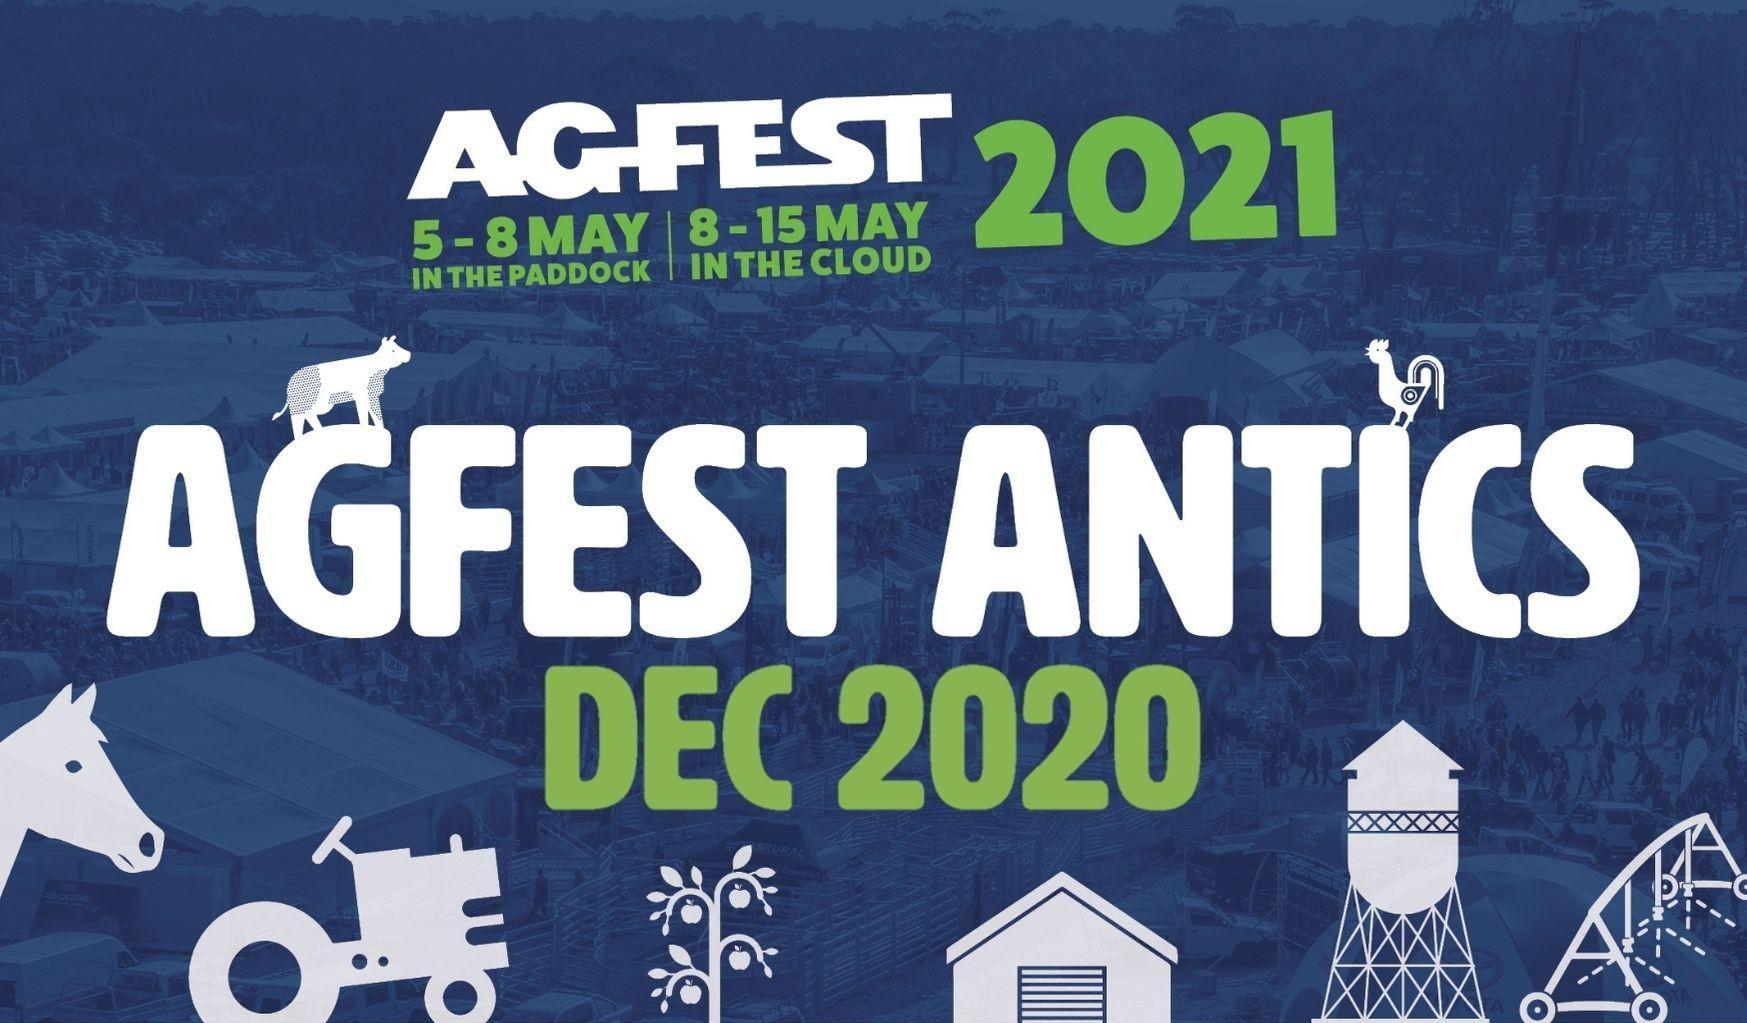 Agfest Antics - December 2020